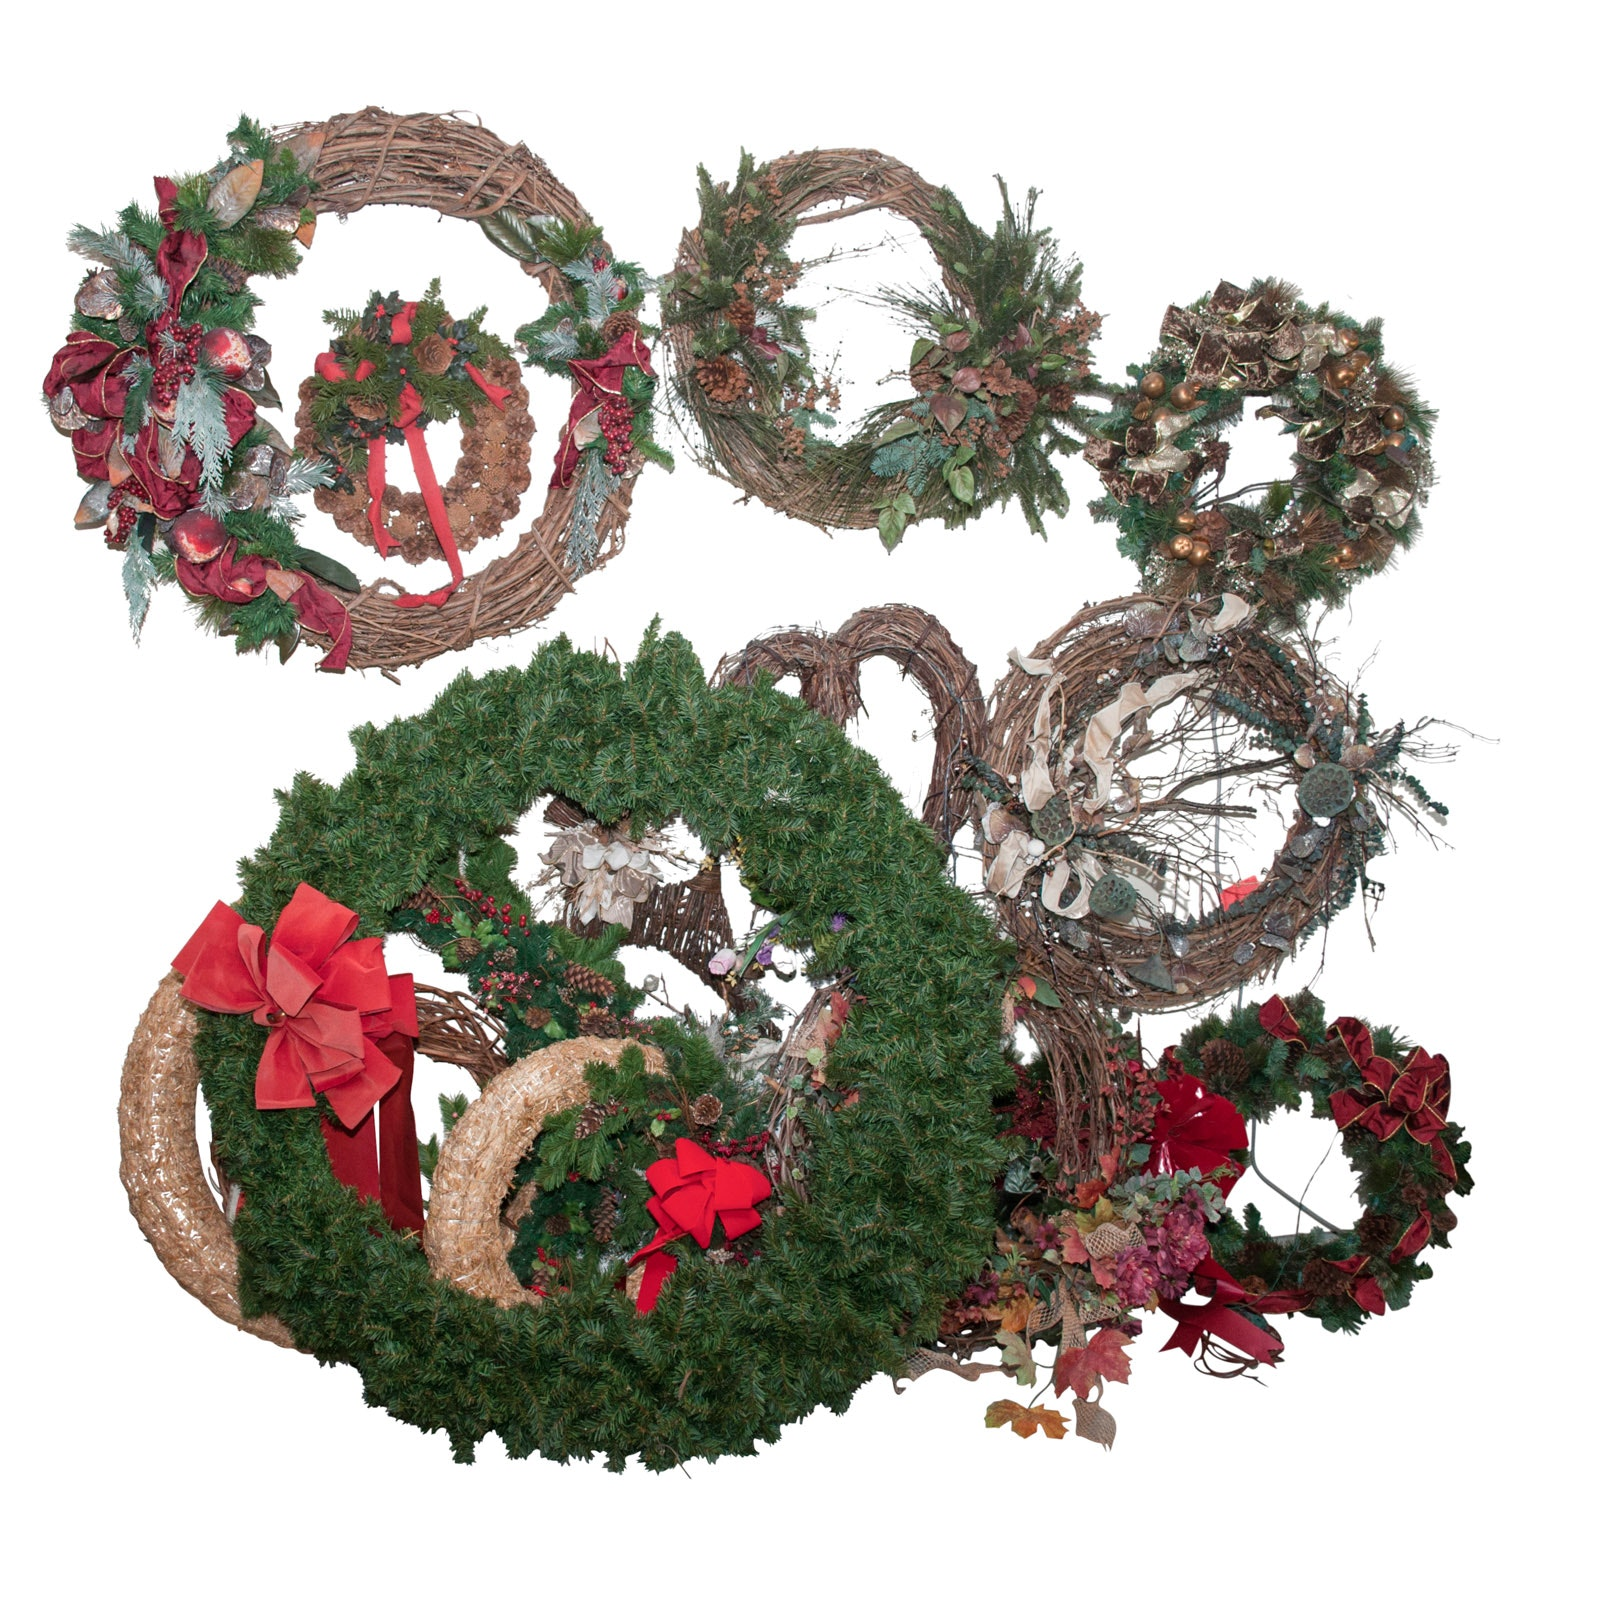 Collection of Seasonal Wreaths and Swags